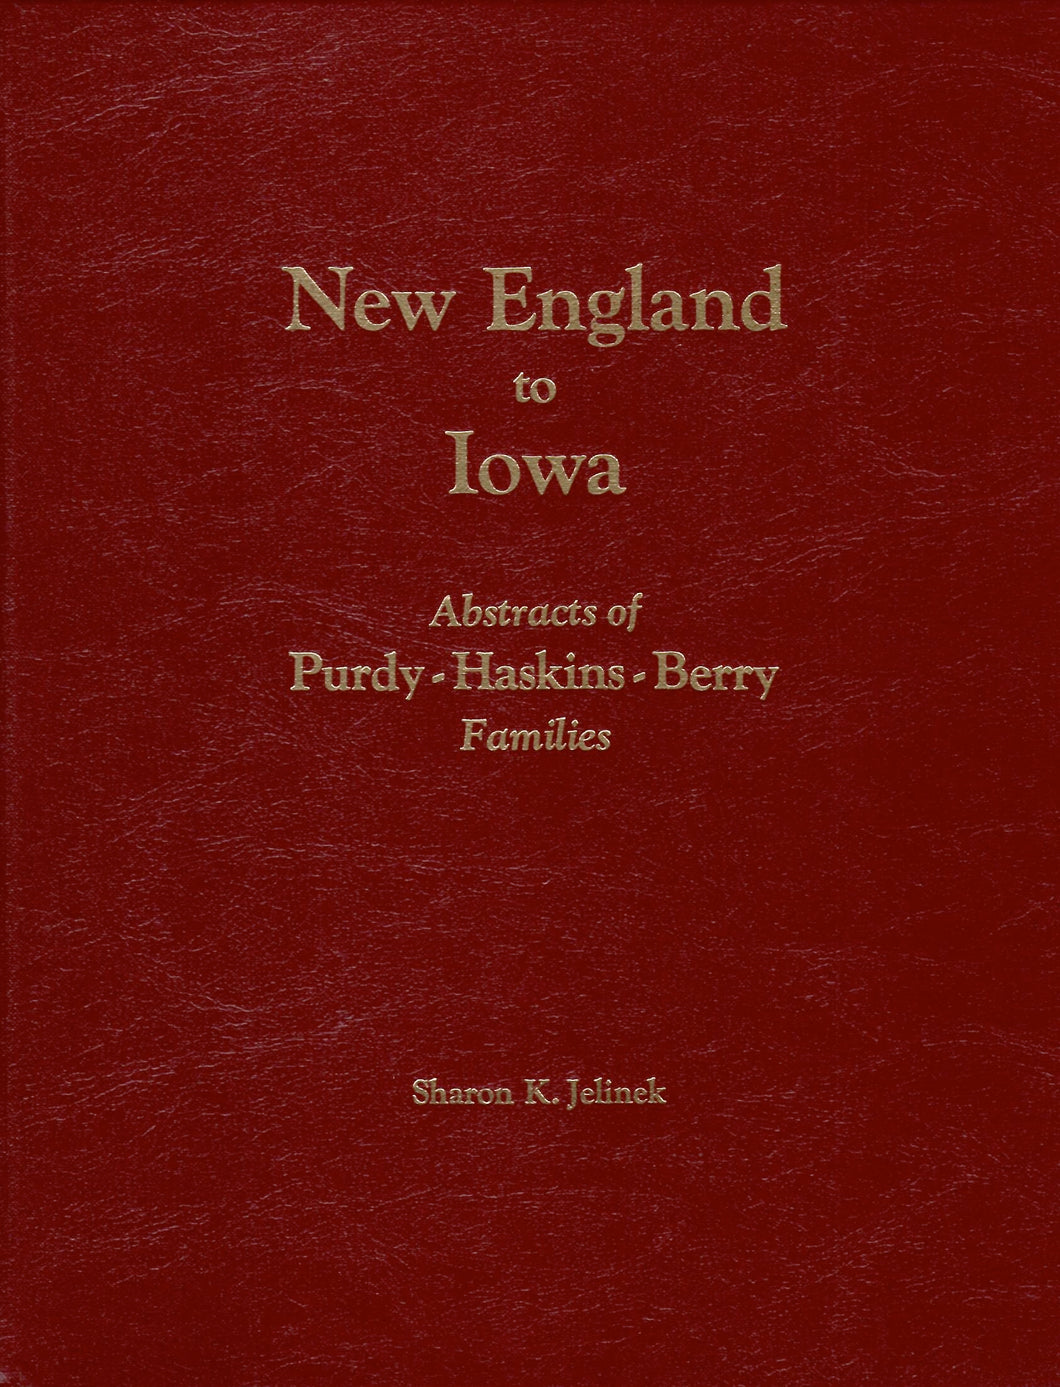 New England to Iowa: Abstracts of Purdy - Haskins - Berry Families